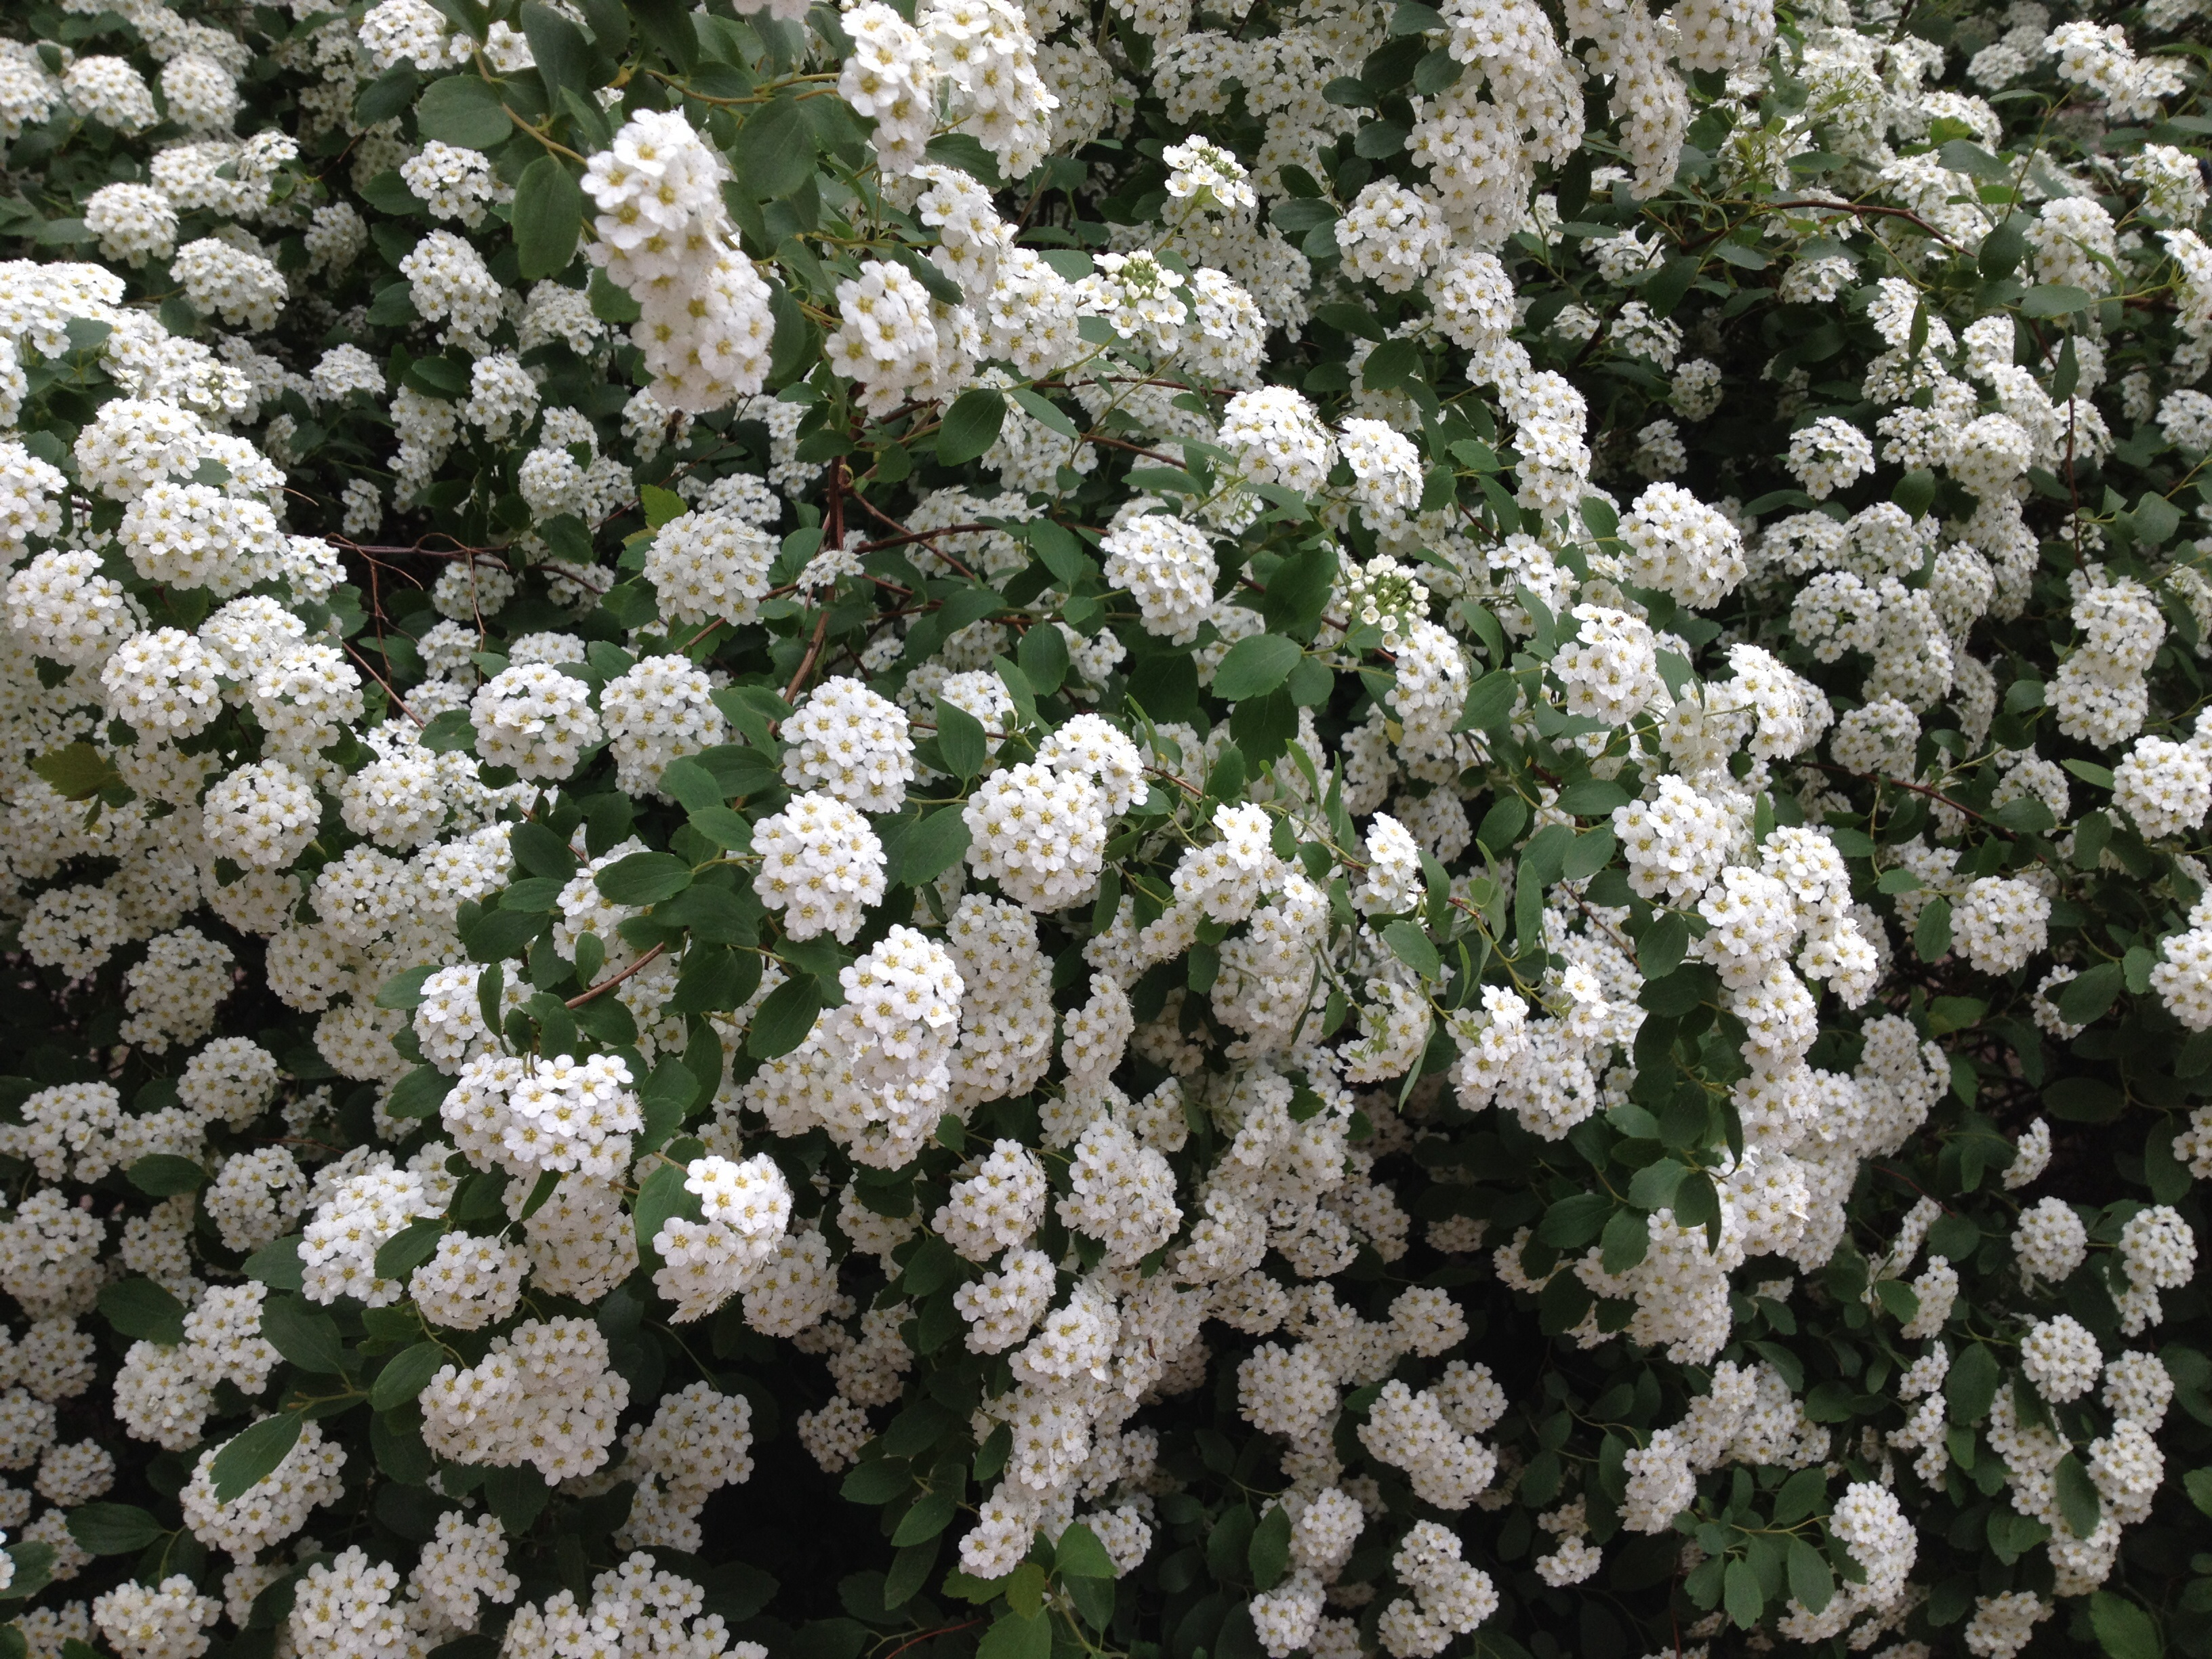 Whats the name of this bush with white flowers like a bride whats the name of this bush with white flowers like a bride mightylinksfo Gallery